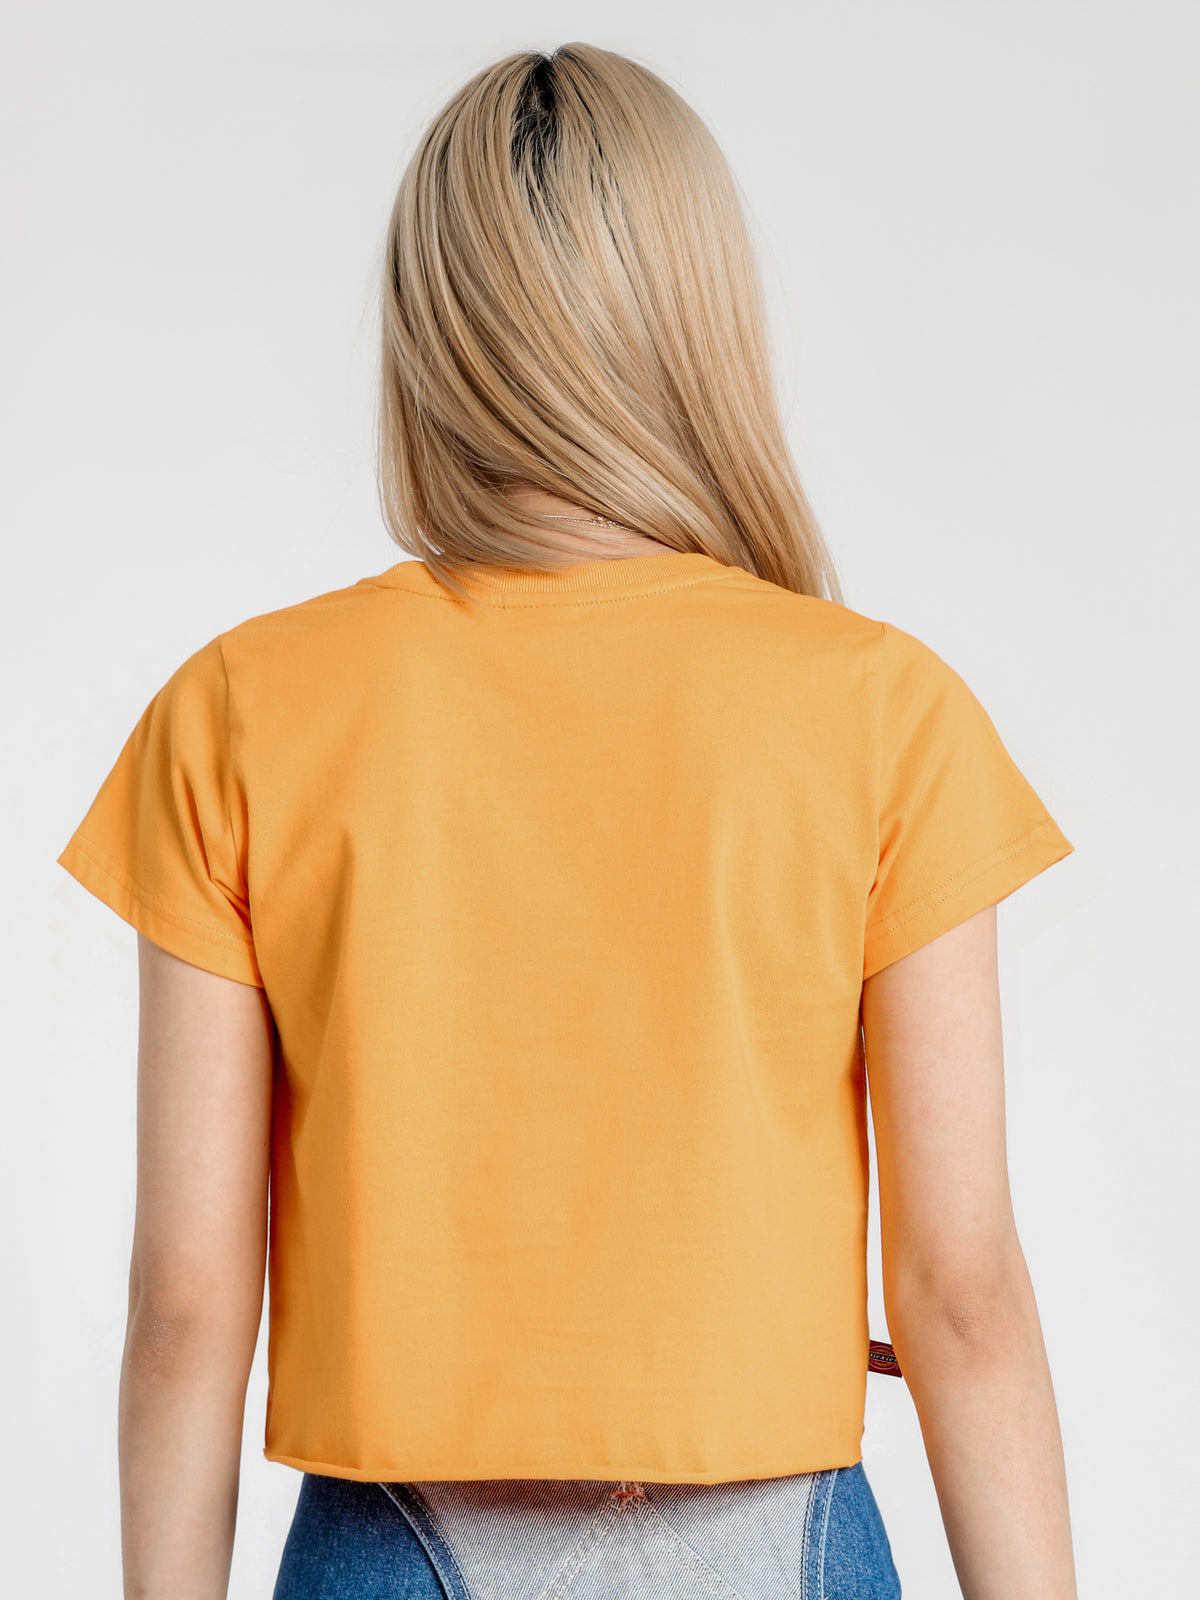 HS Logo Cropped T-Shirt in Orange